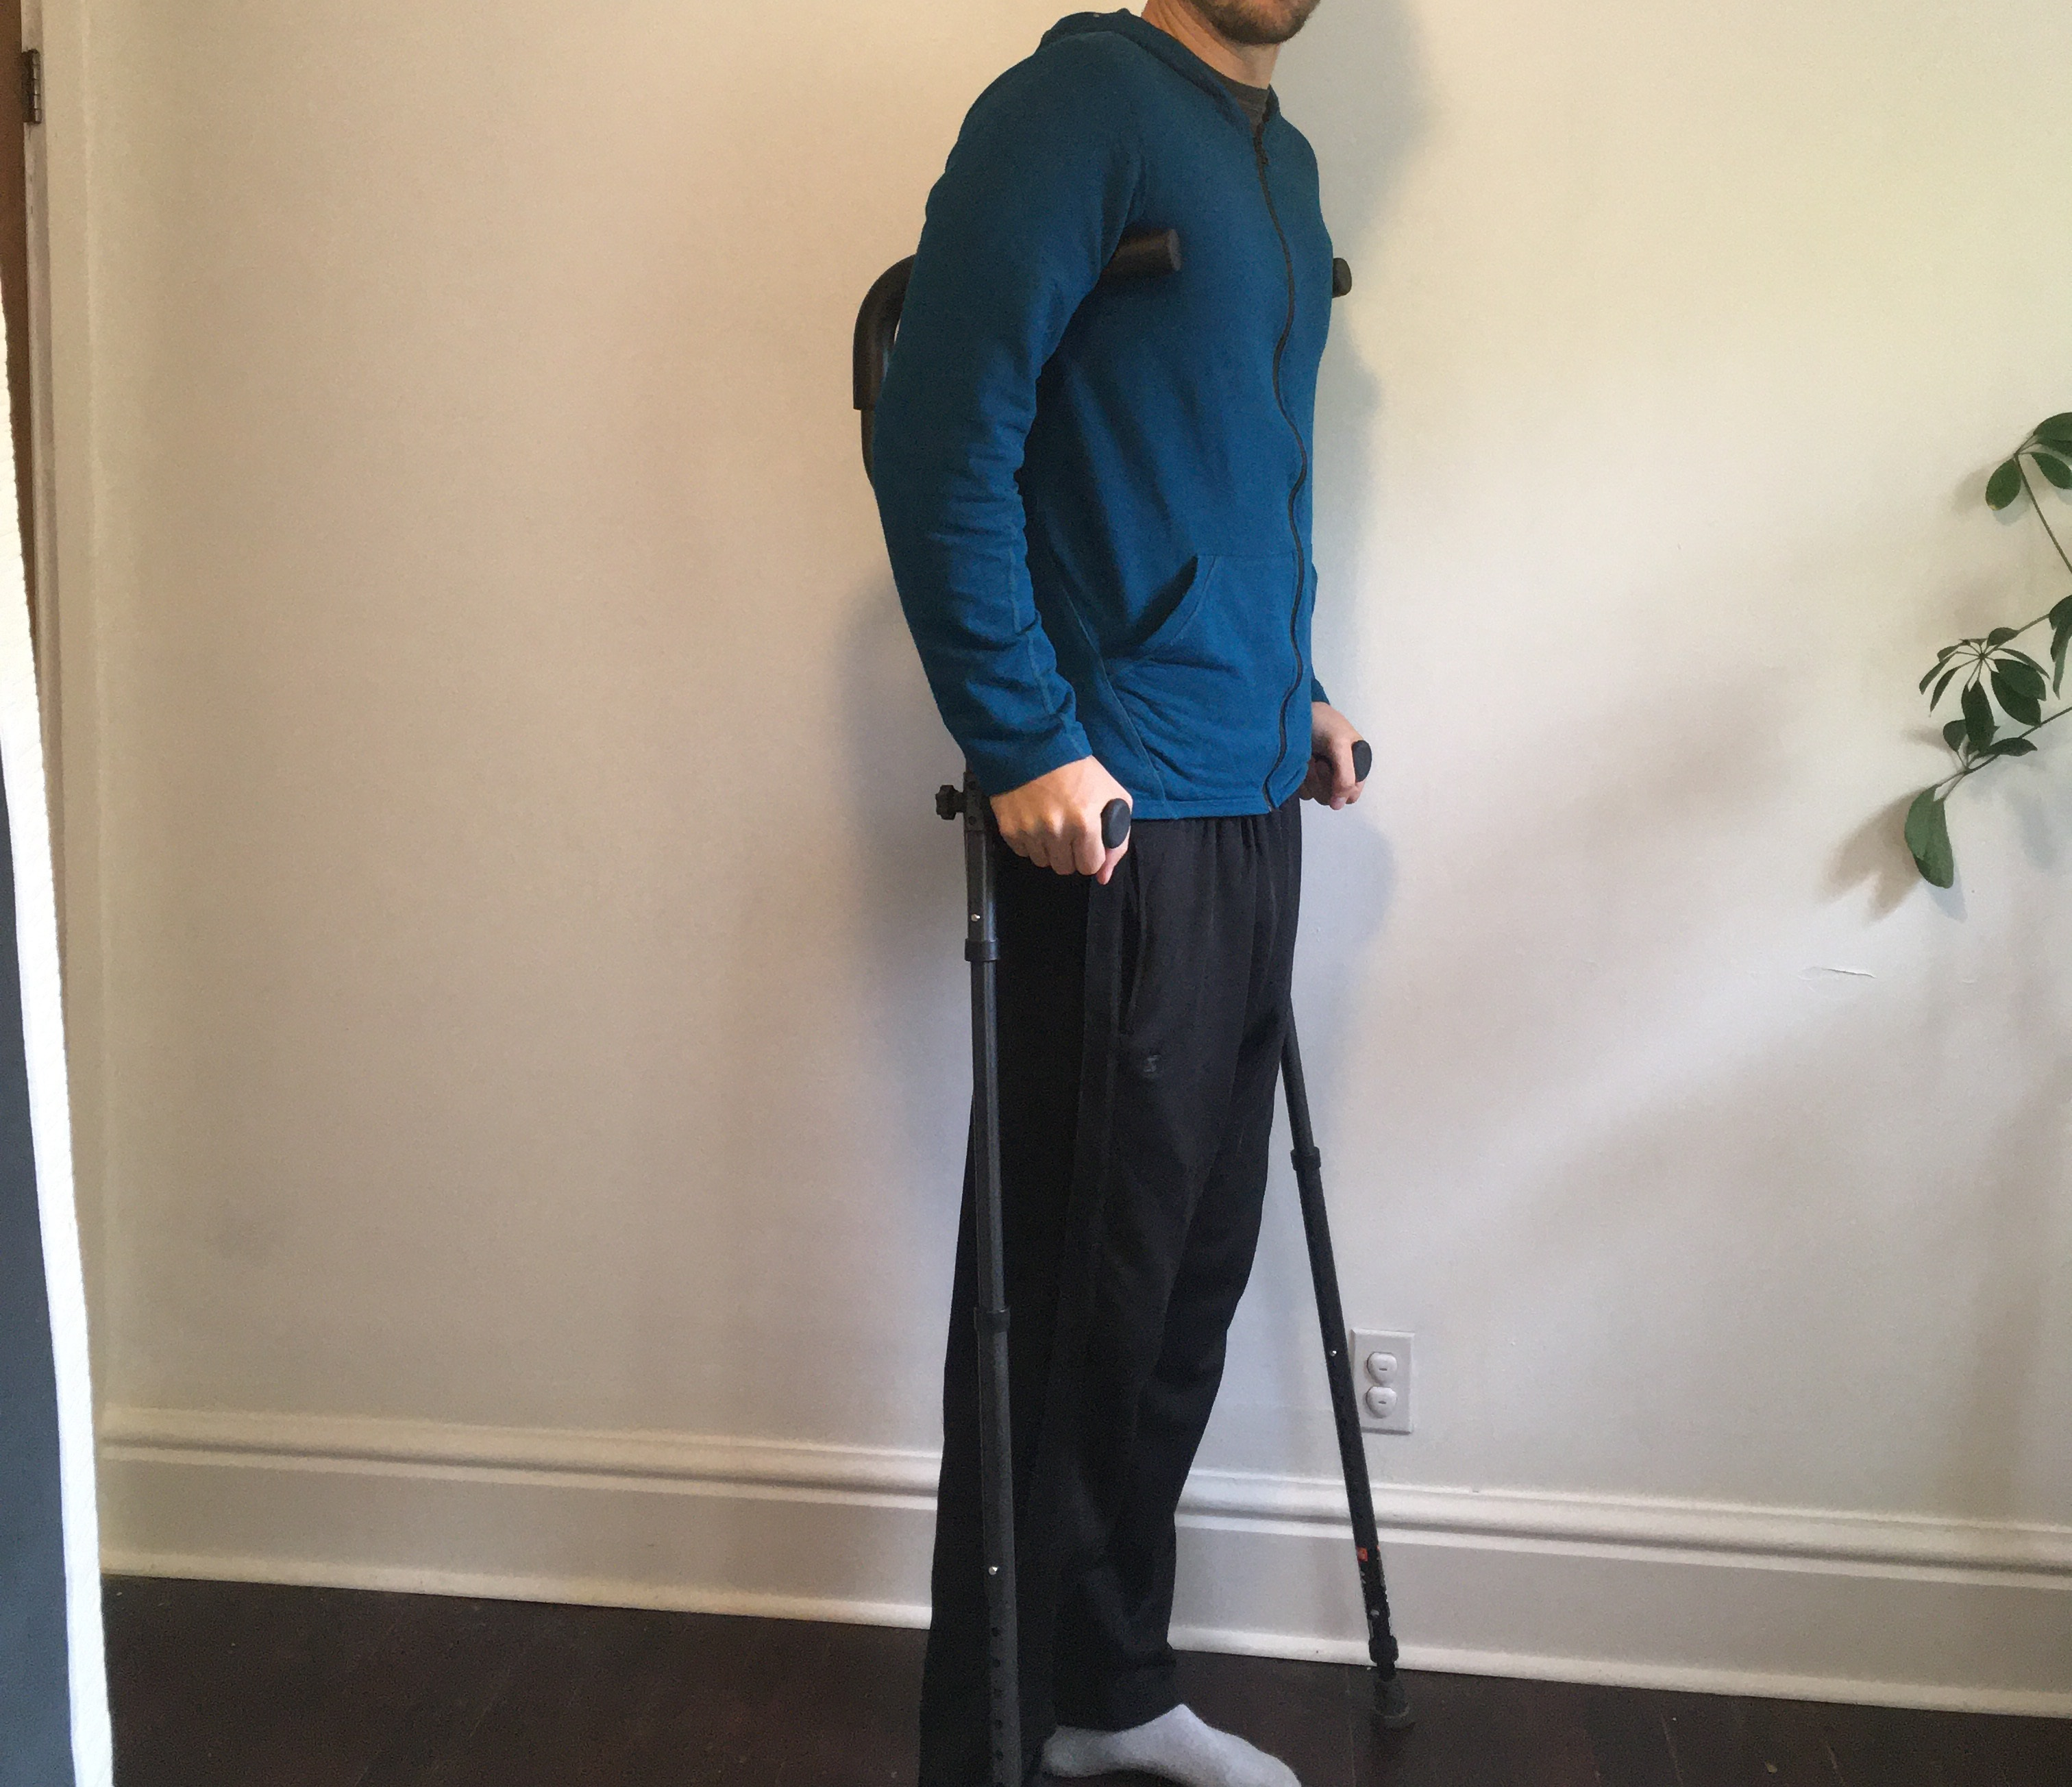 Extra Long Crutches for Tall People